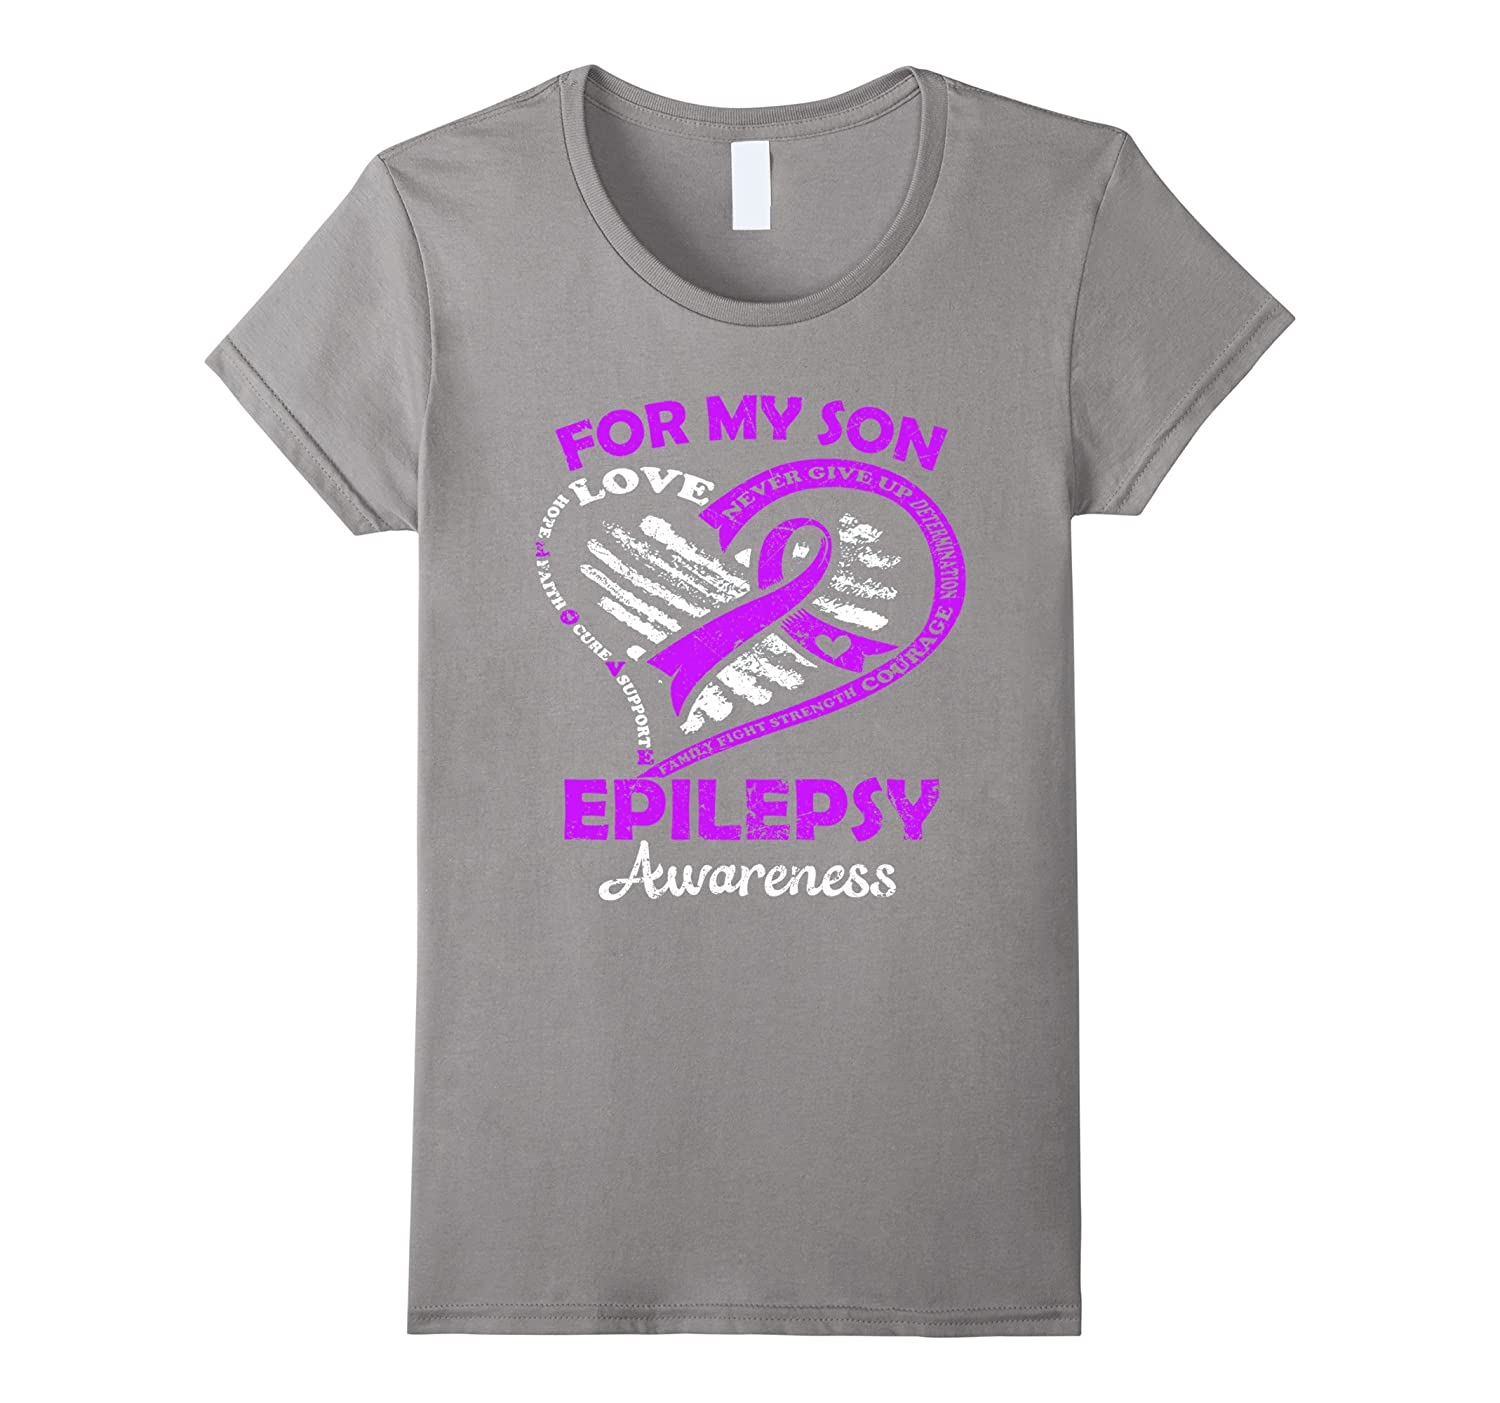 For my son epilepsy awareness t shirt